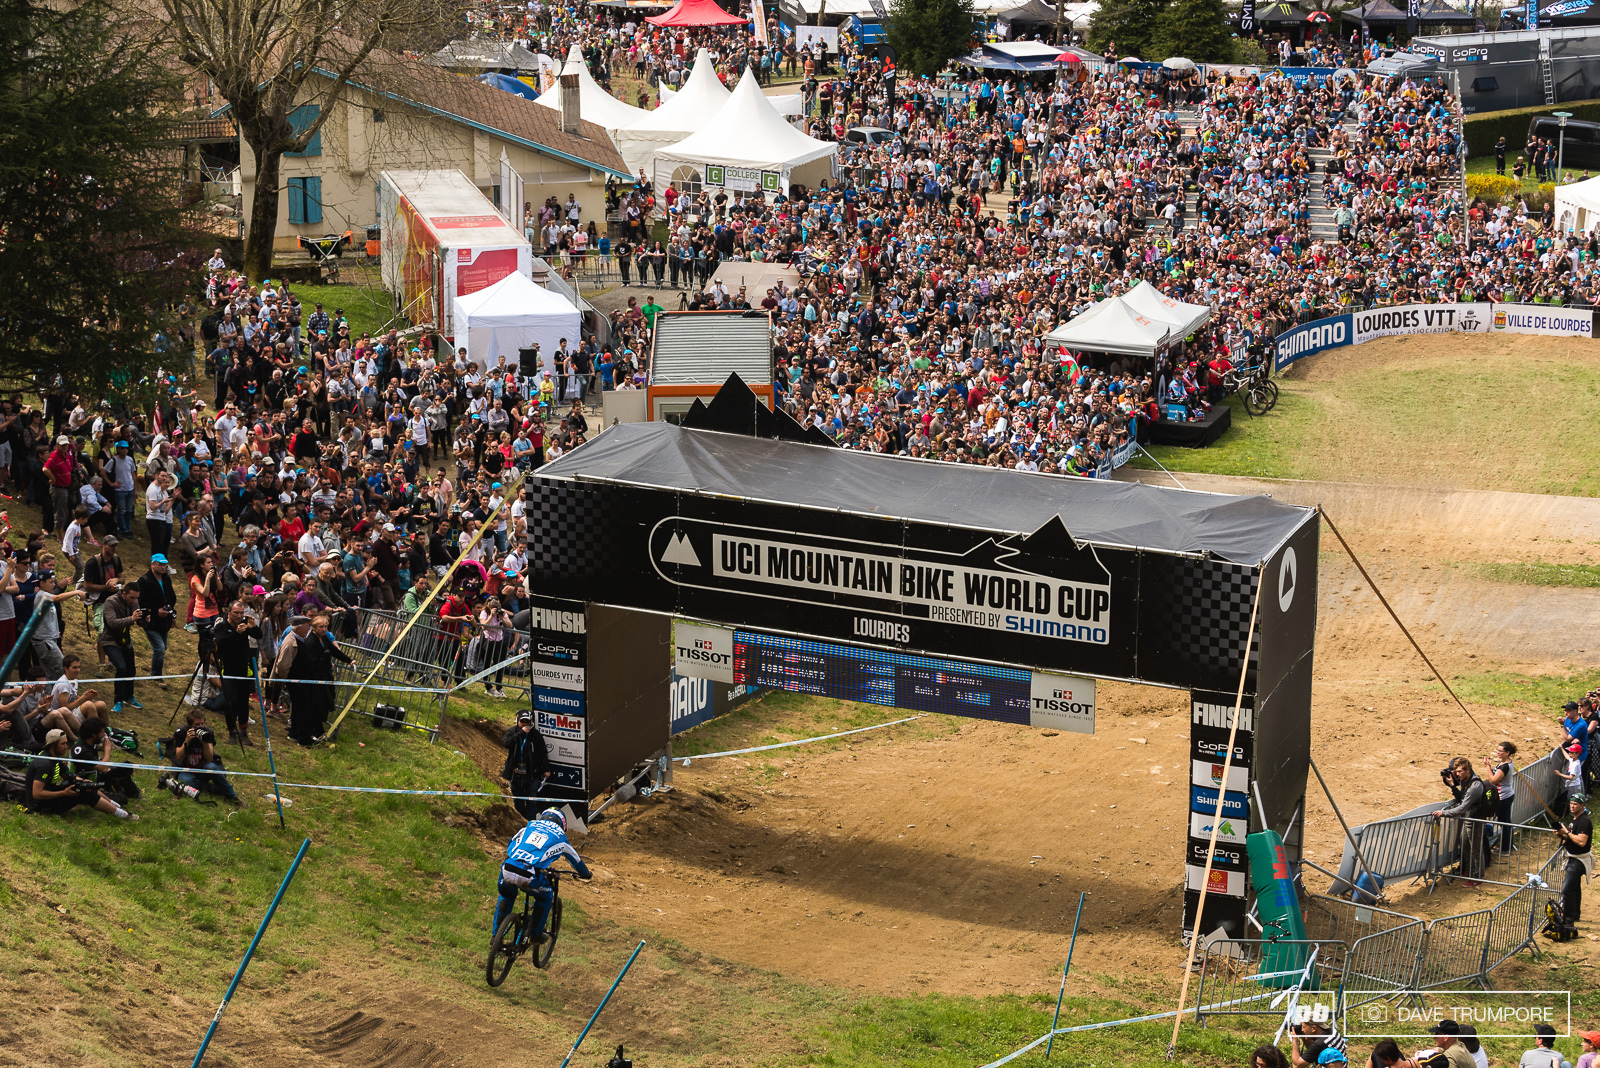 Guillaume Cauvin gets things started for the top 20 men as he drops into a capacity finish line crowd in Lourdes.